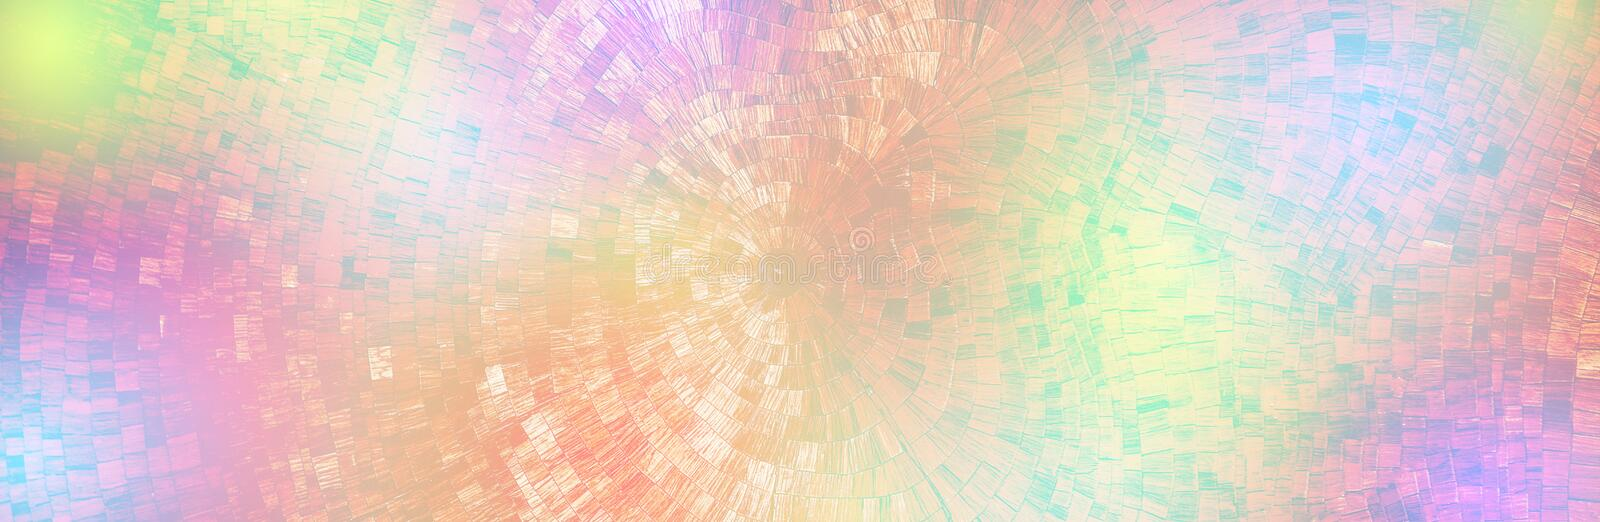 Mosaic abstract colorful background stock photo